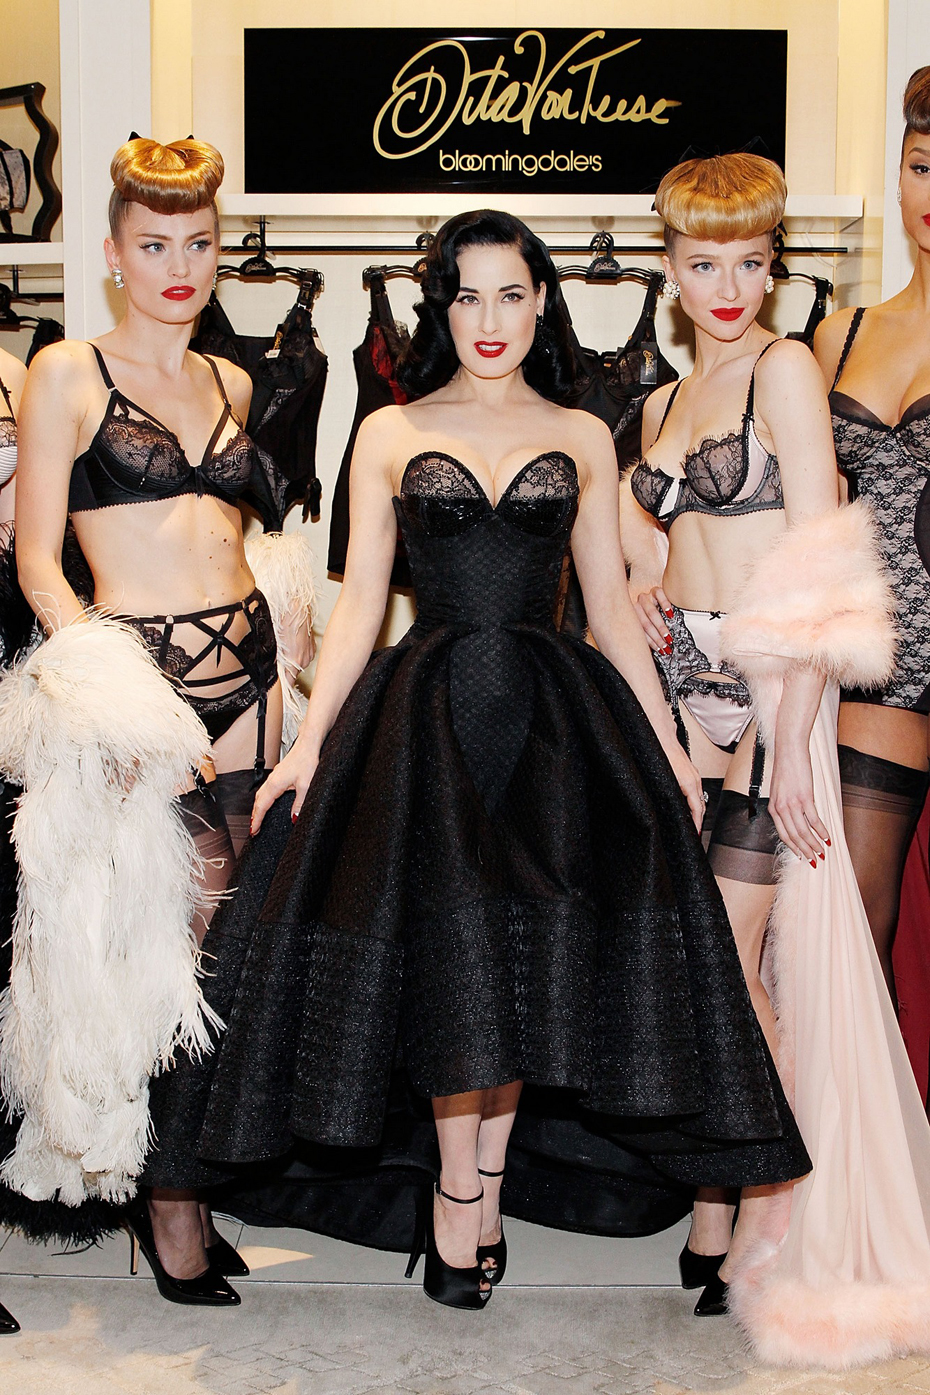 cb0dbdda6b58 Dita Von Teese launches lingerie collection - FFT - Spotting Trends